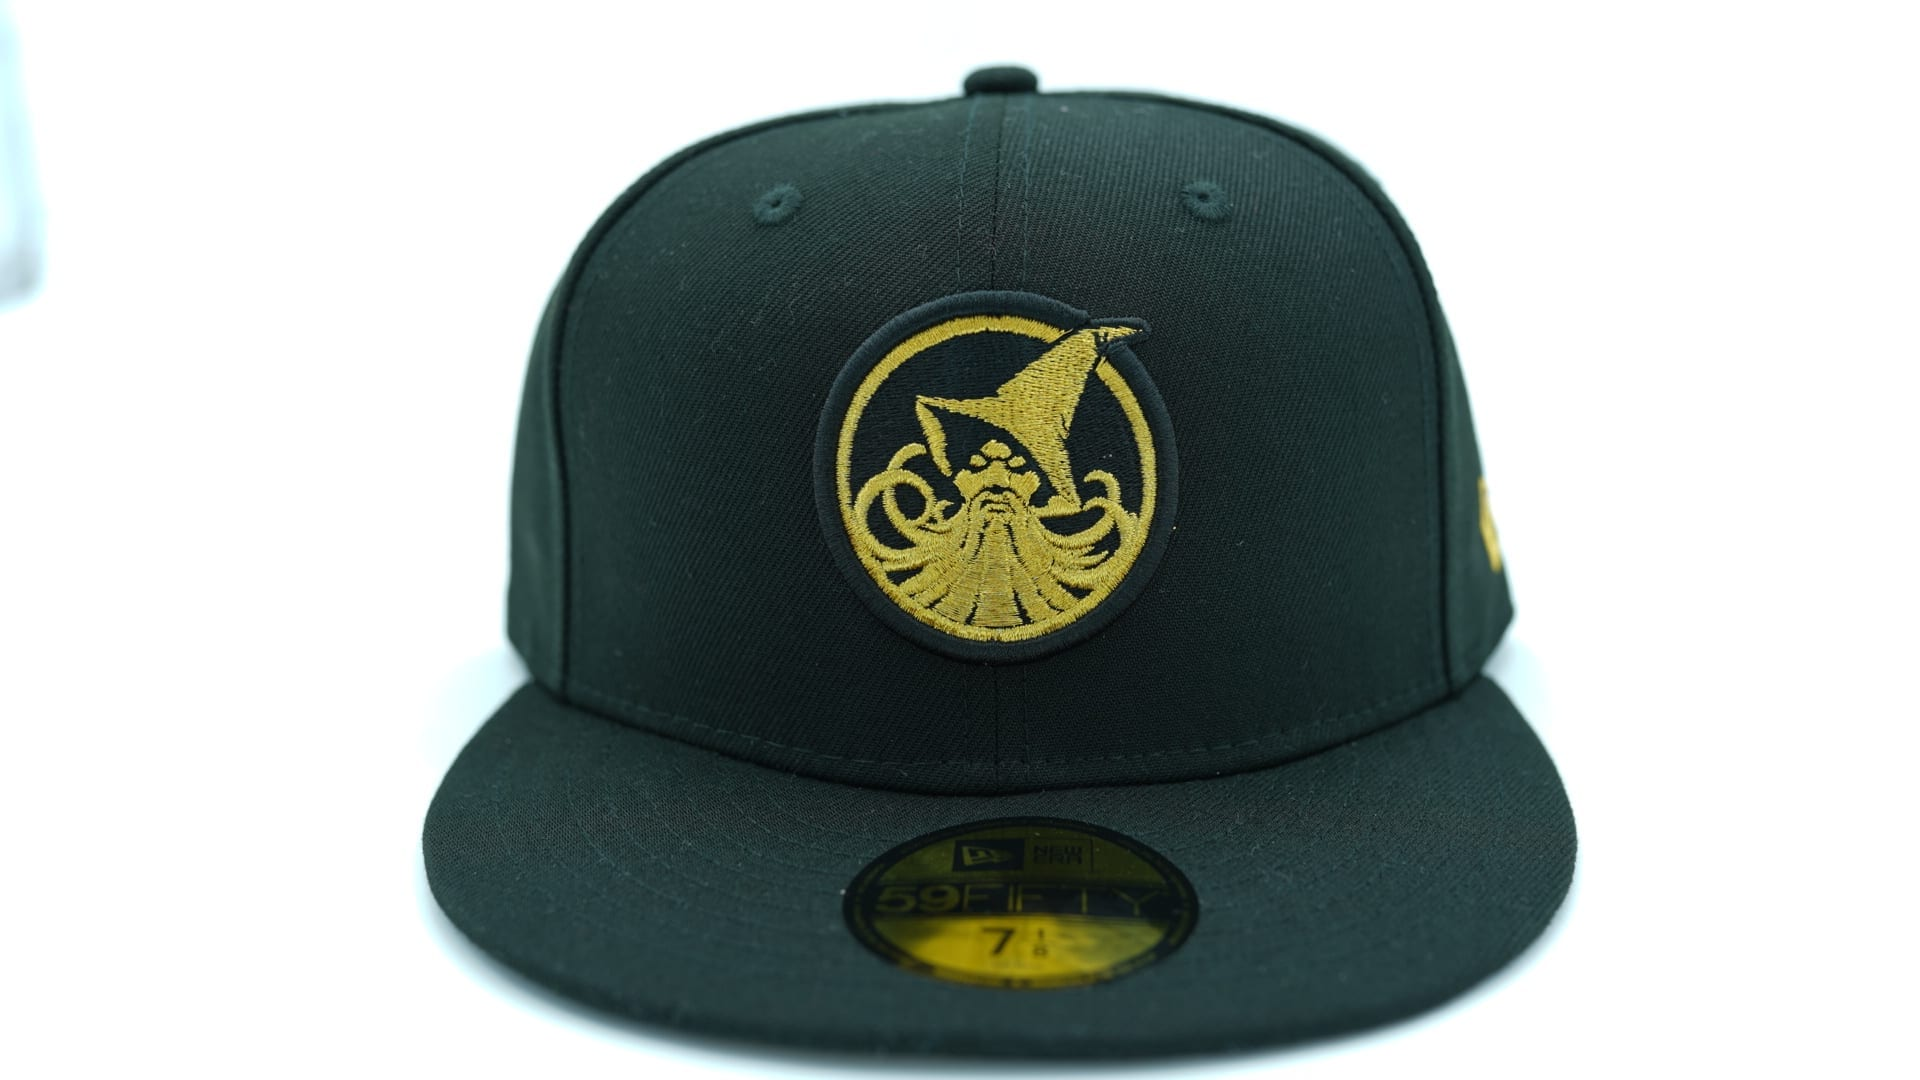 7union-new-era-59Fifty-fitted-baseball-cap-hat